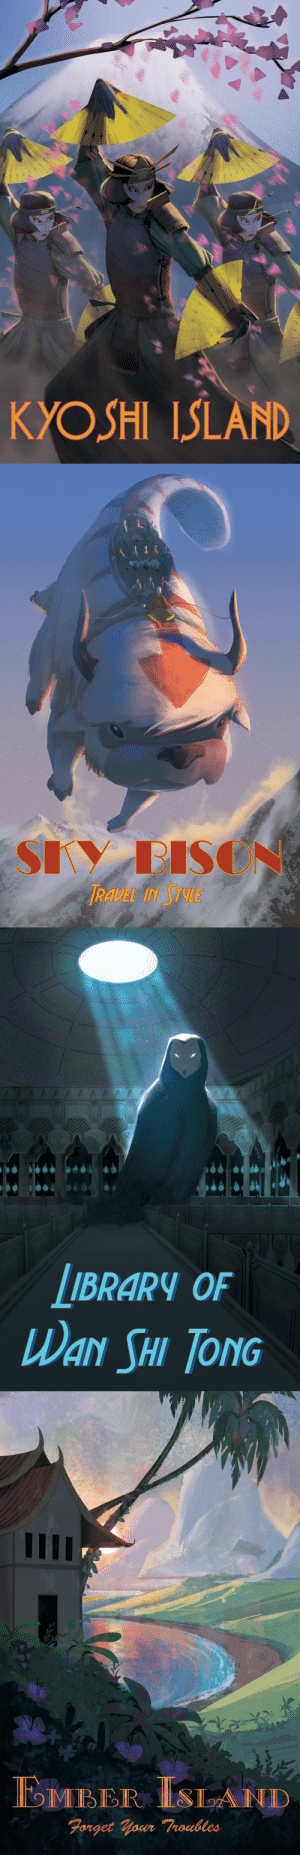 Target, The Last Airbender, and Tumblr: KYOSHI ISLAND   RAVEL IN JTVLE   IBRARY OF  WaY SHI Tond   DMBER SL ND  awr pablonotpicasso:Some travel posters inspired by Avatar: The Last Airbender! I'll be at Silicon Valley Comic Con this weekend selling these as prints as well; Artist Alley #145!